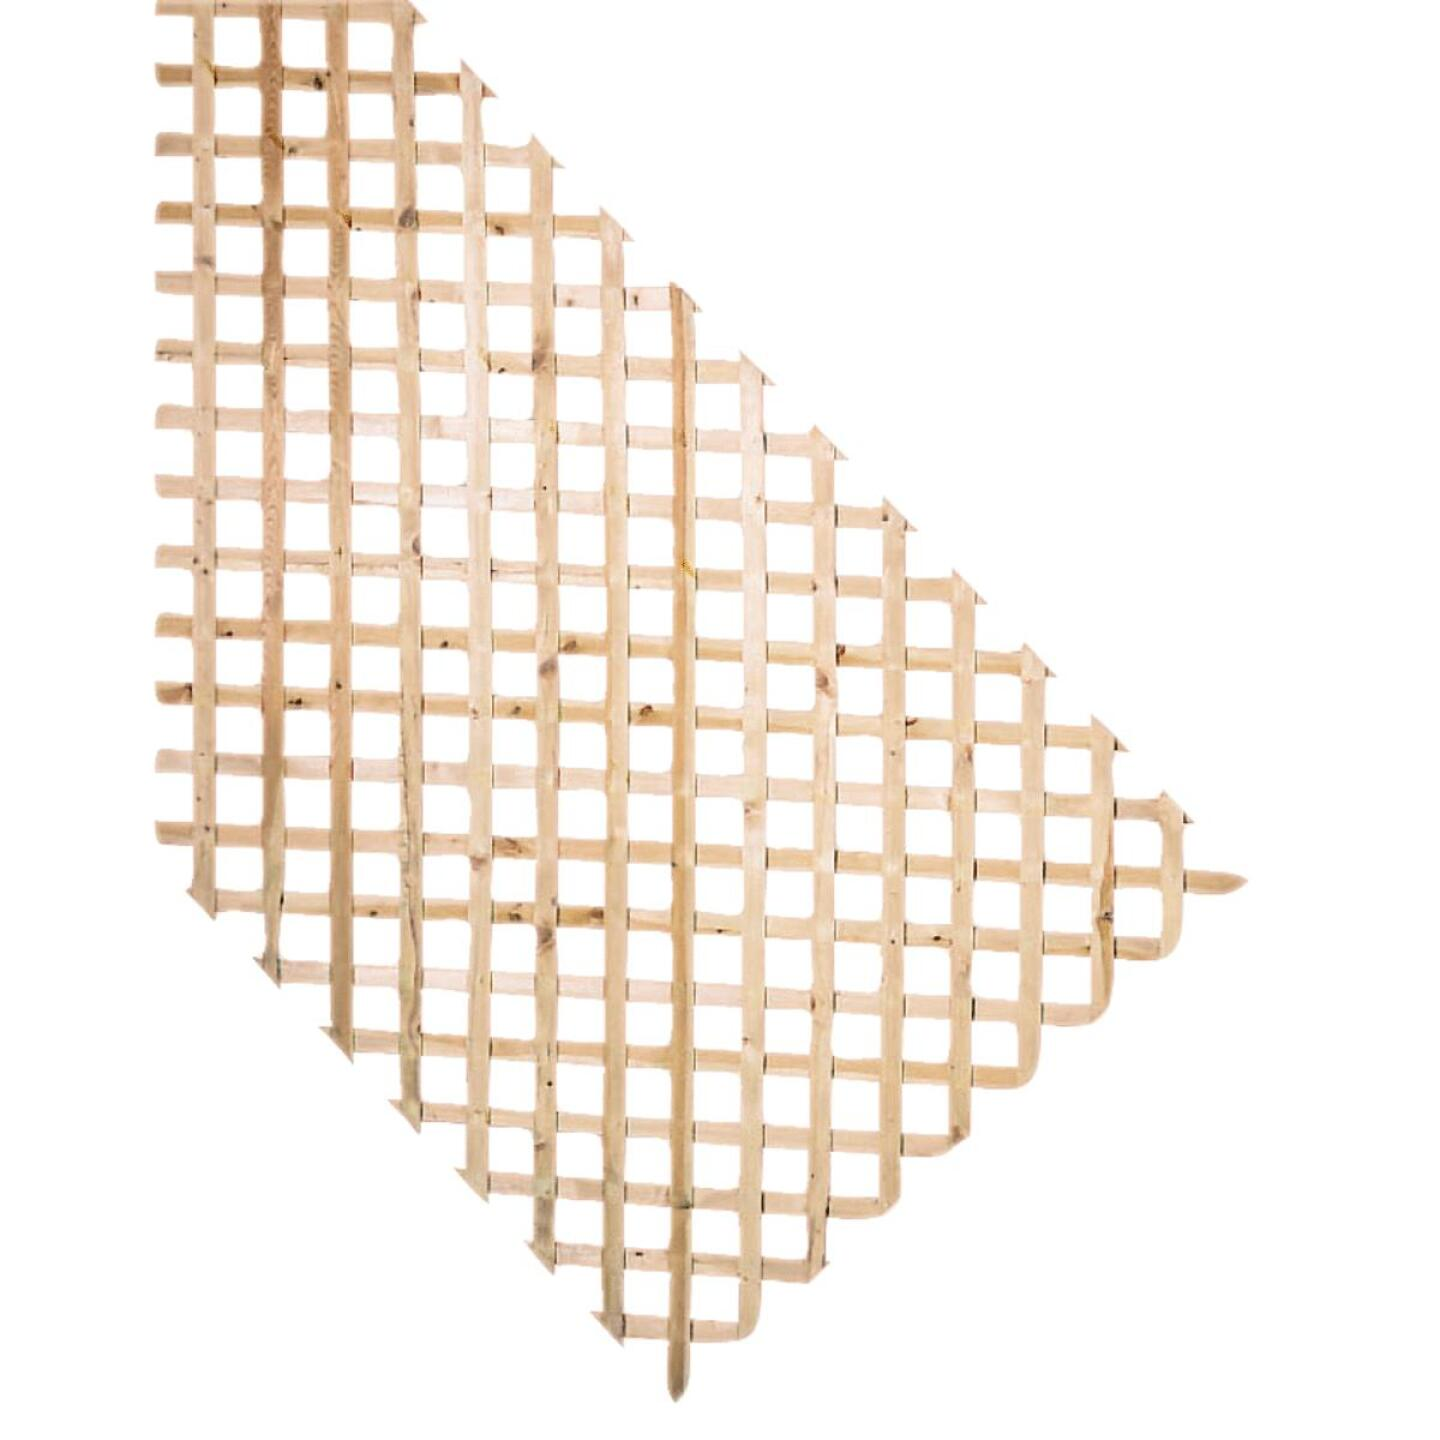 Prowood 4 Ft. W x 8 Ft. L x 1/2 In. Thick Natural Treated Wood Lattice Panel Image 1